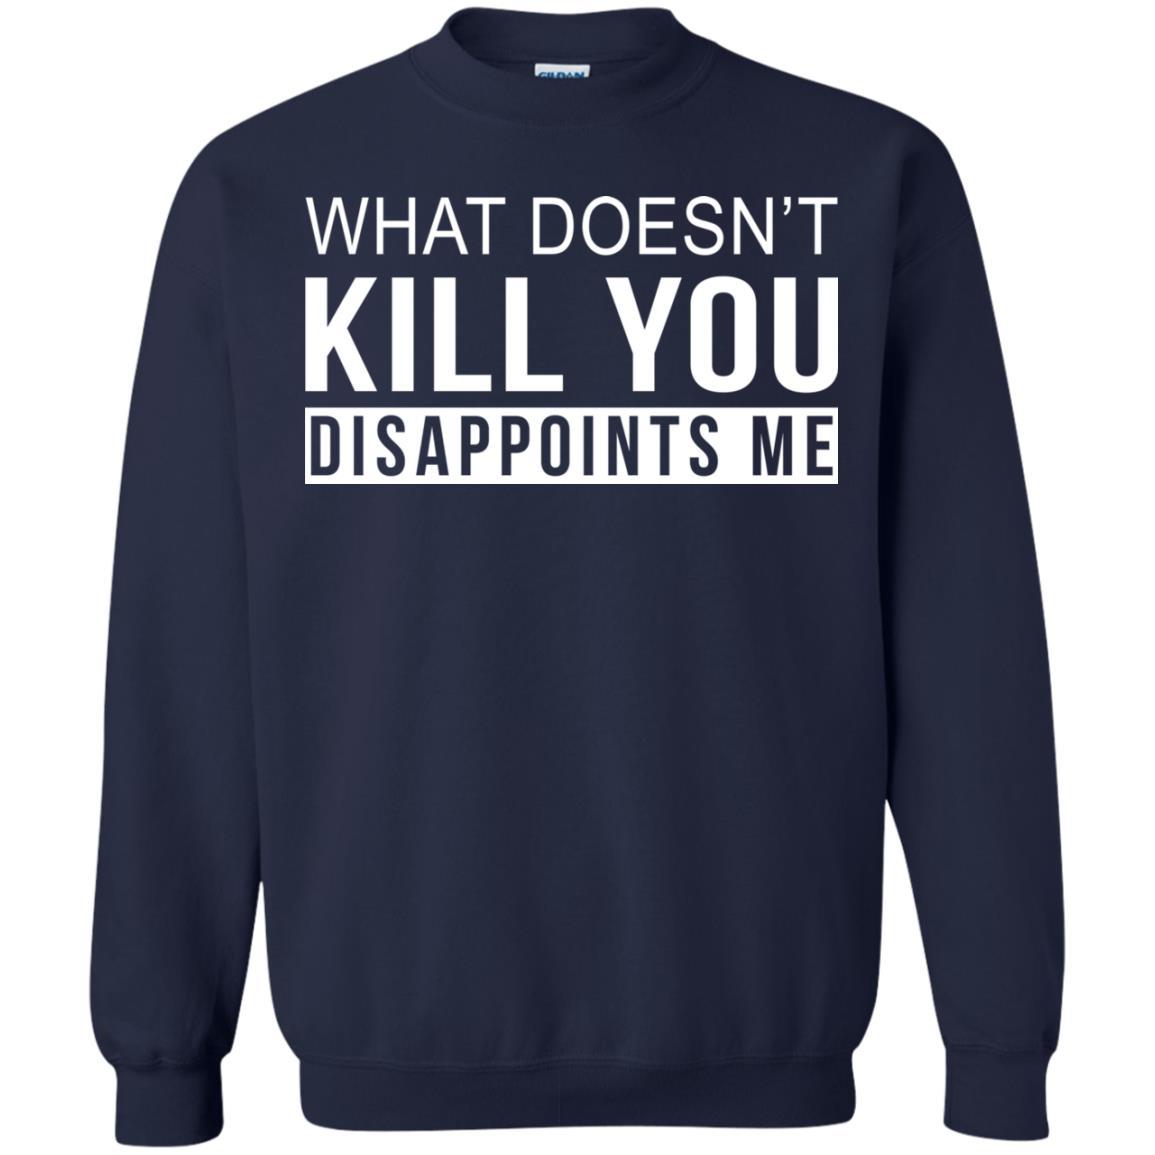 image 269 - What Doesn't Kill You Disappoints Shirt, Hoodie, Sweatshirt